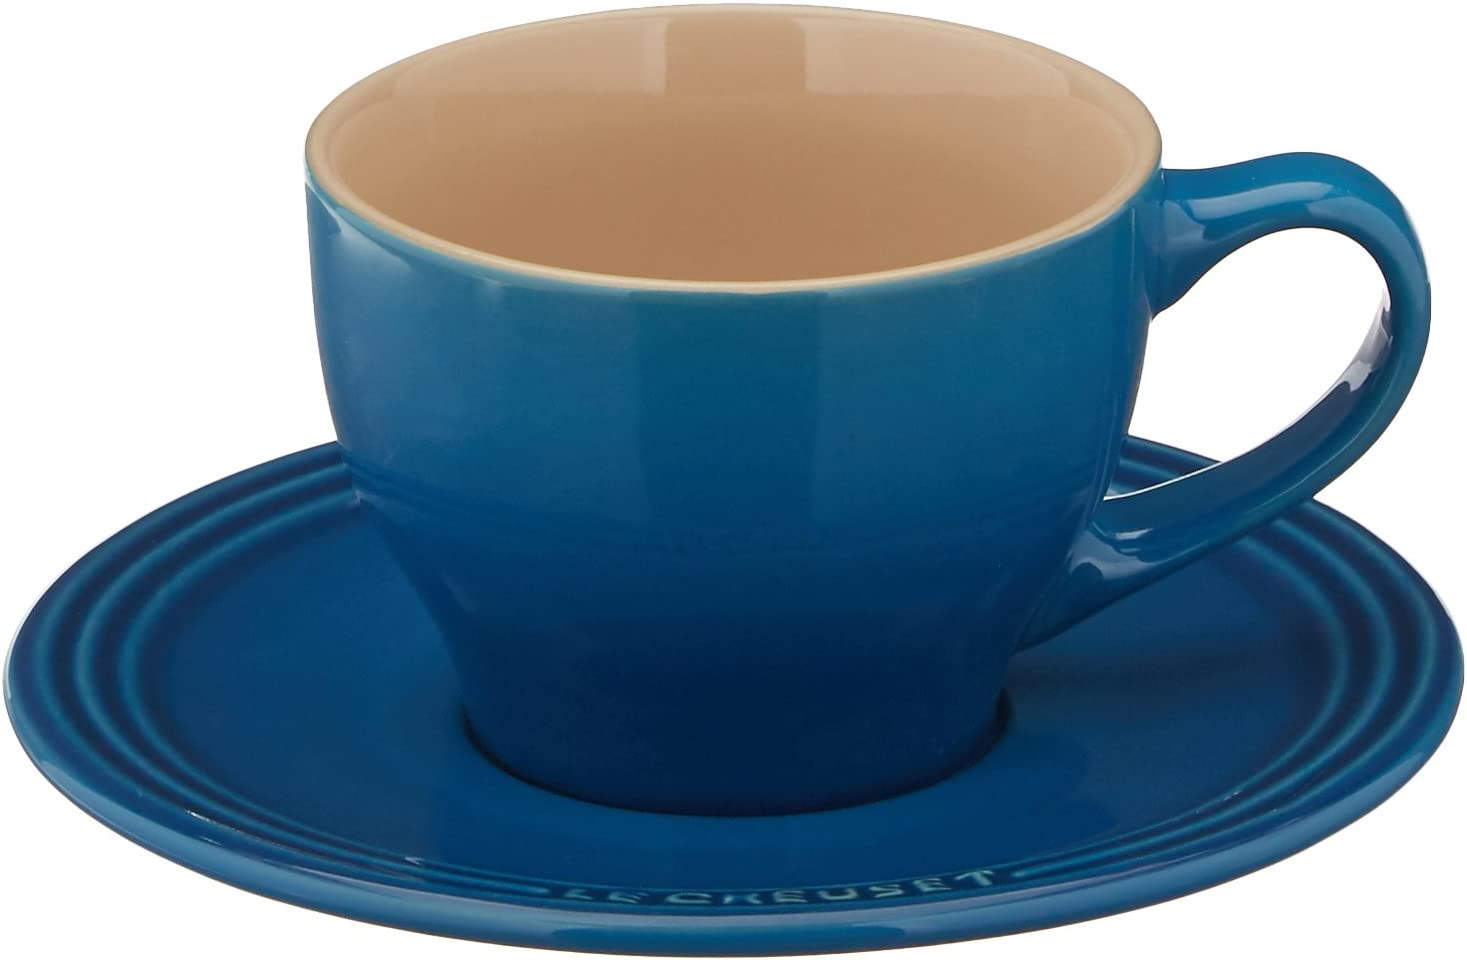 Le Creuset Stoneware Set of 2 Cappuccino Cups and Saucers Oyster